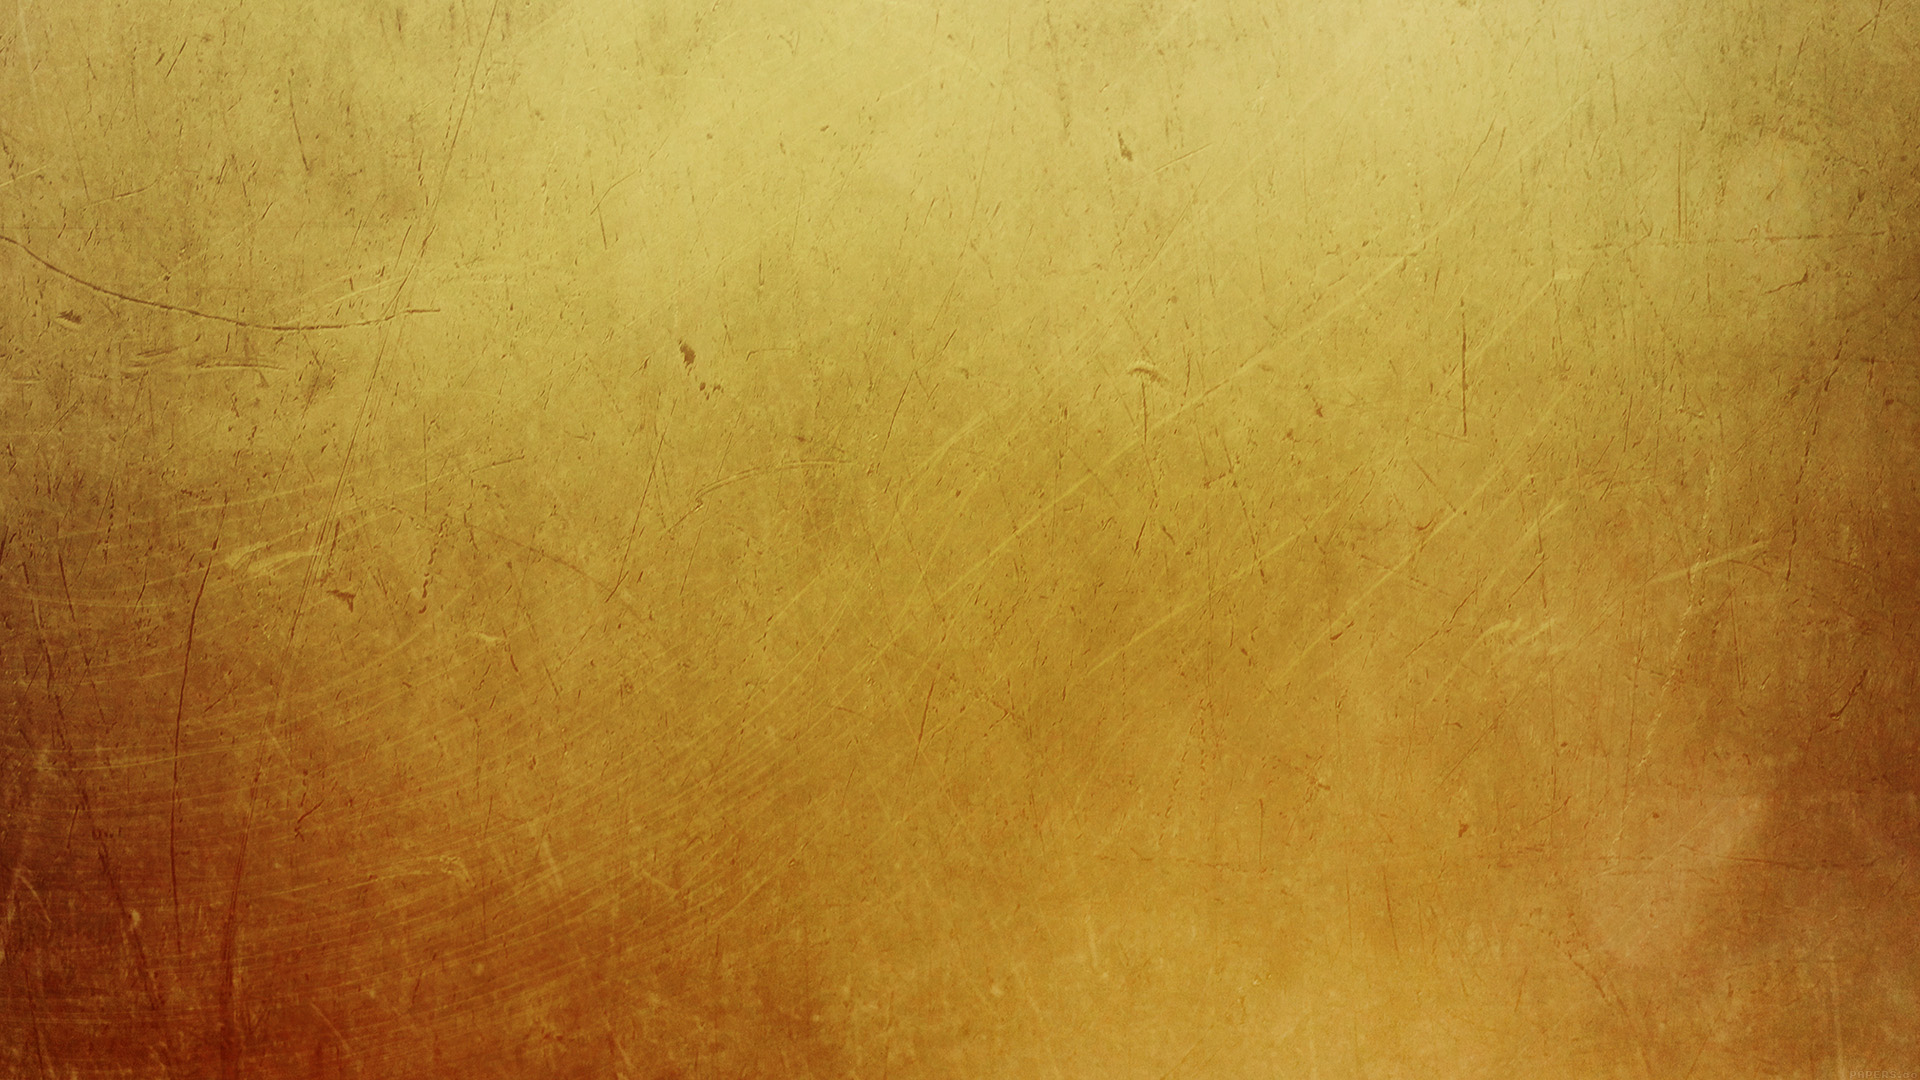 Free Fall Desktop Wallpaper Vf03 Golden Sandstone Texture Pattern Papers Co